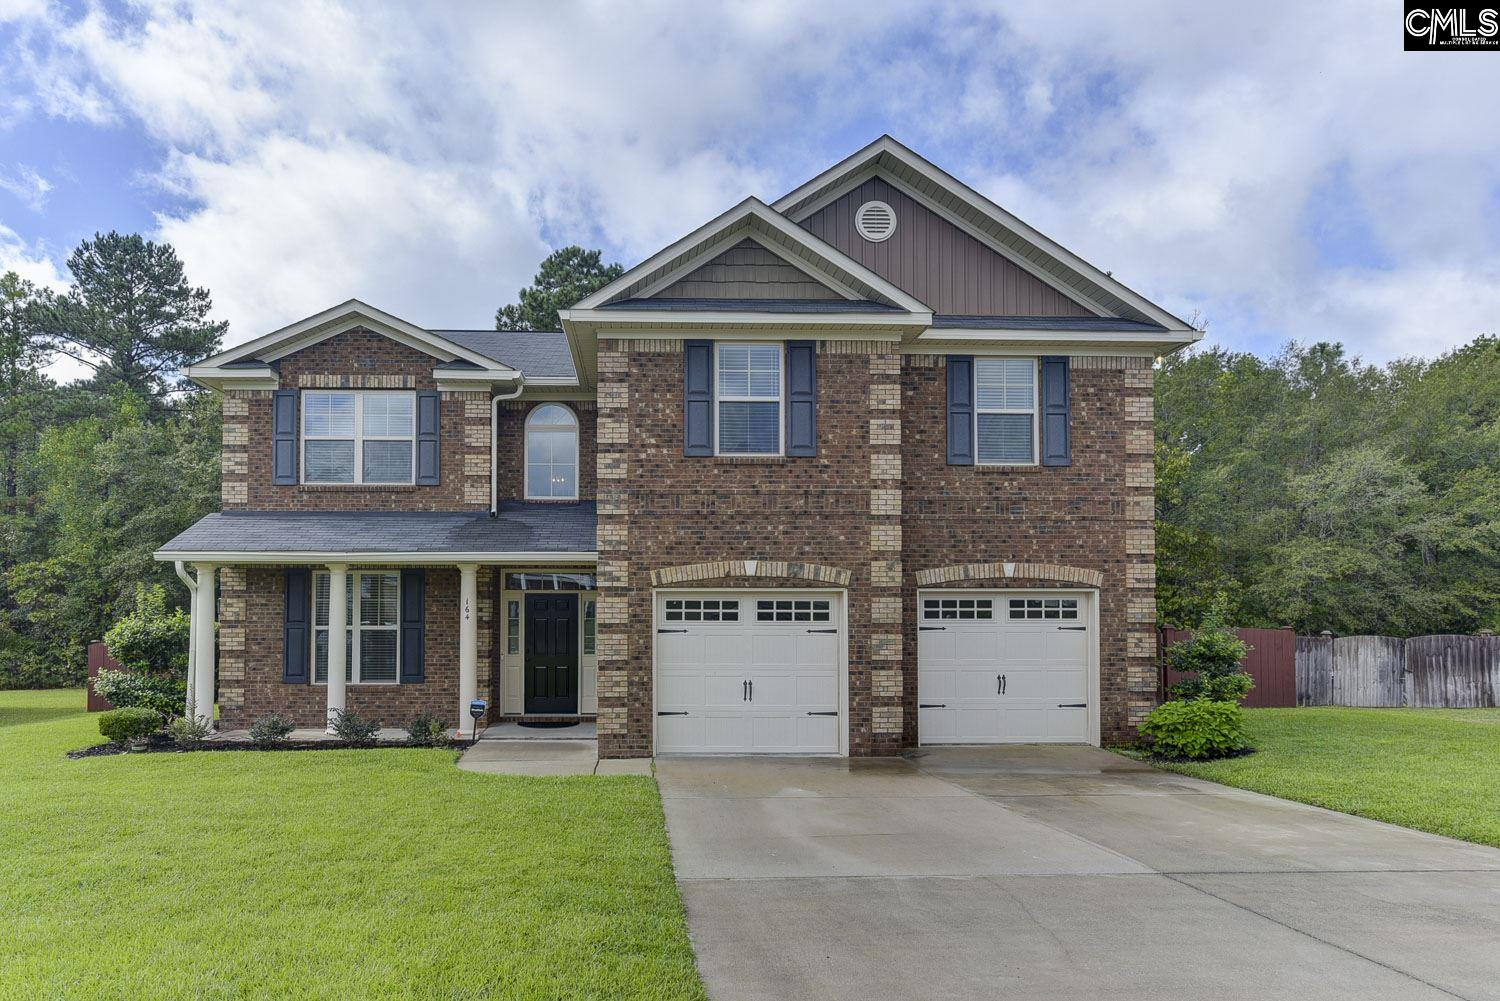 164 Thomaston Columbia, SC 29229-8191